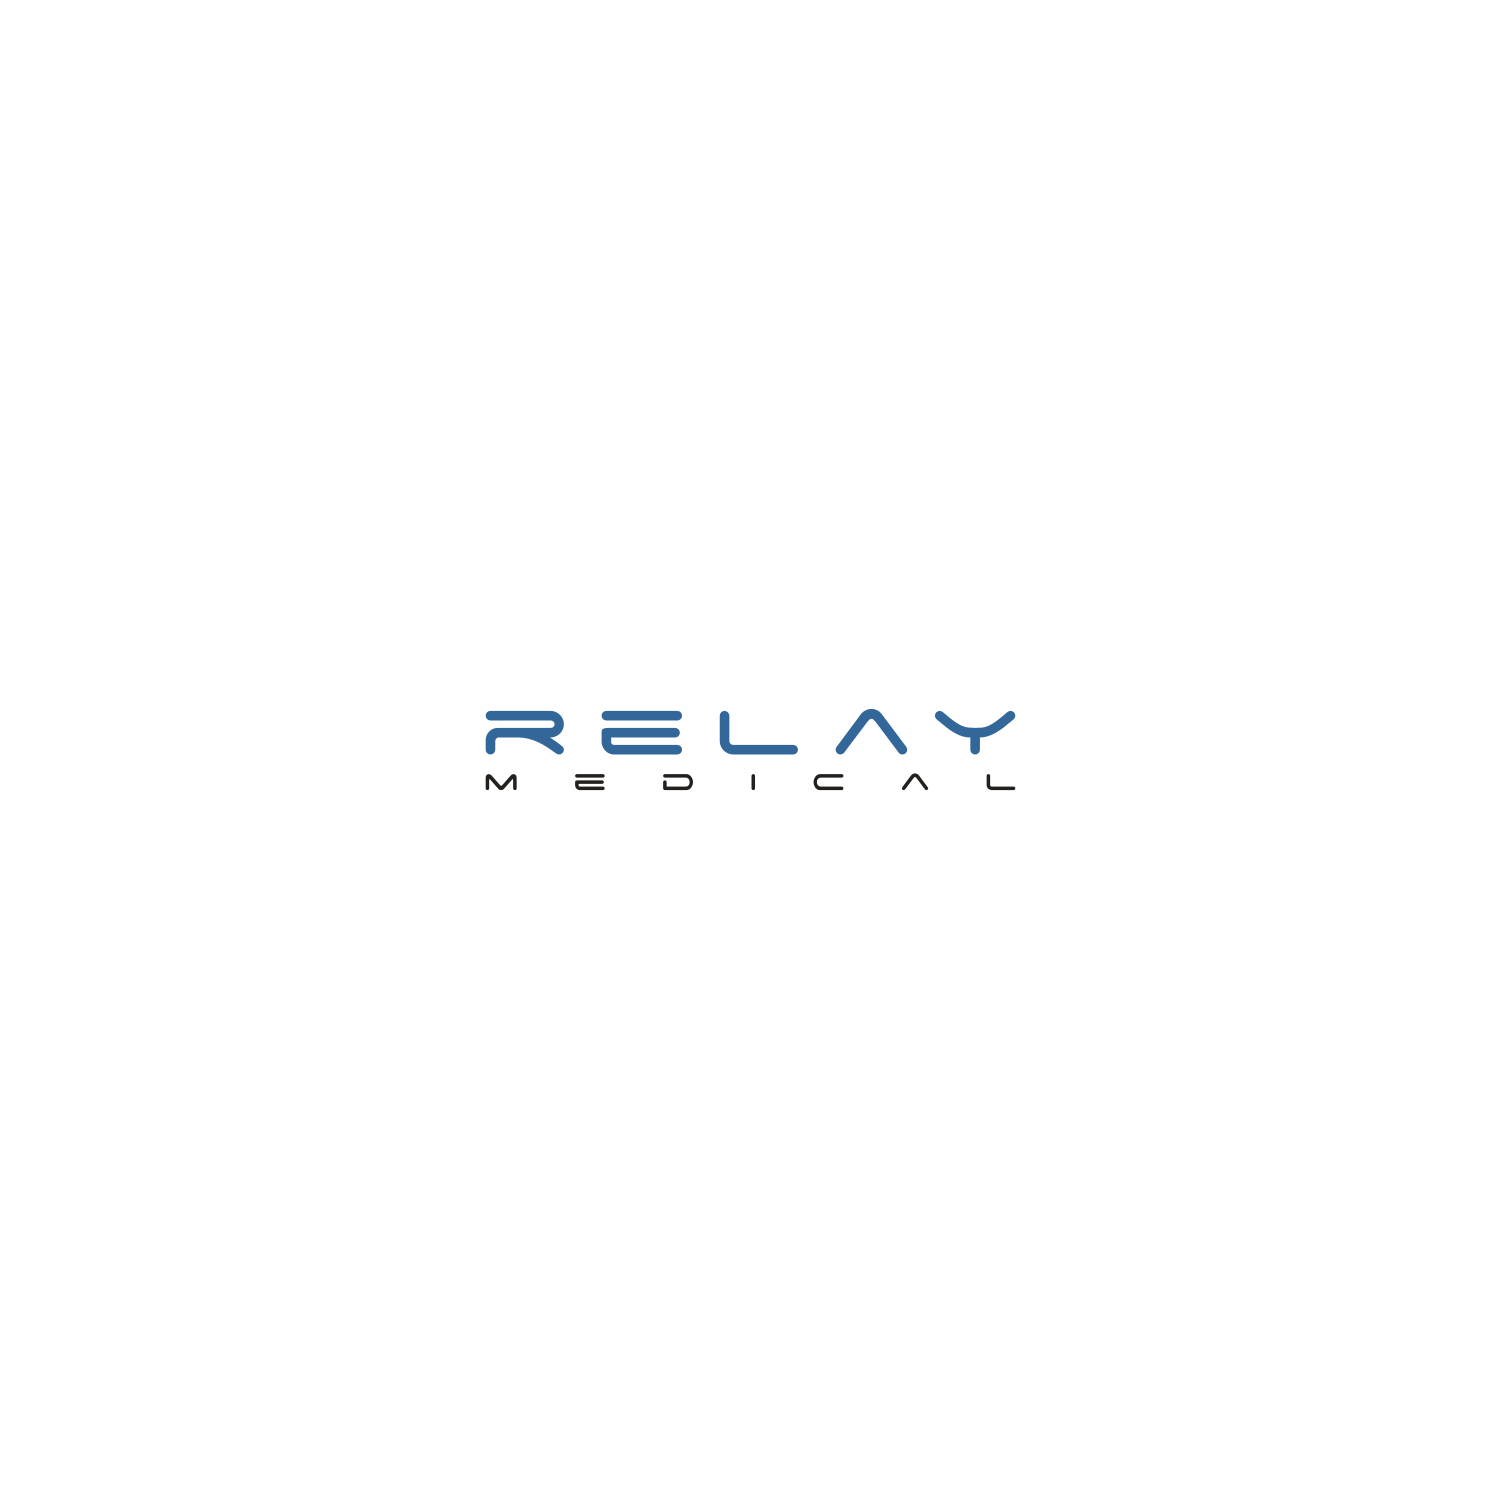 Professional Masculine Health Care Logo Design For Relay Medical Electromagnetic By Dinasti Jin 15159506